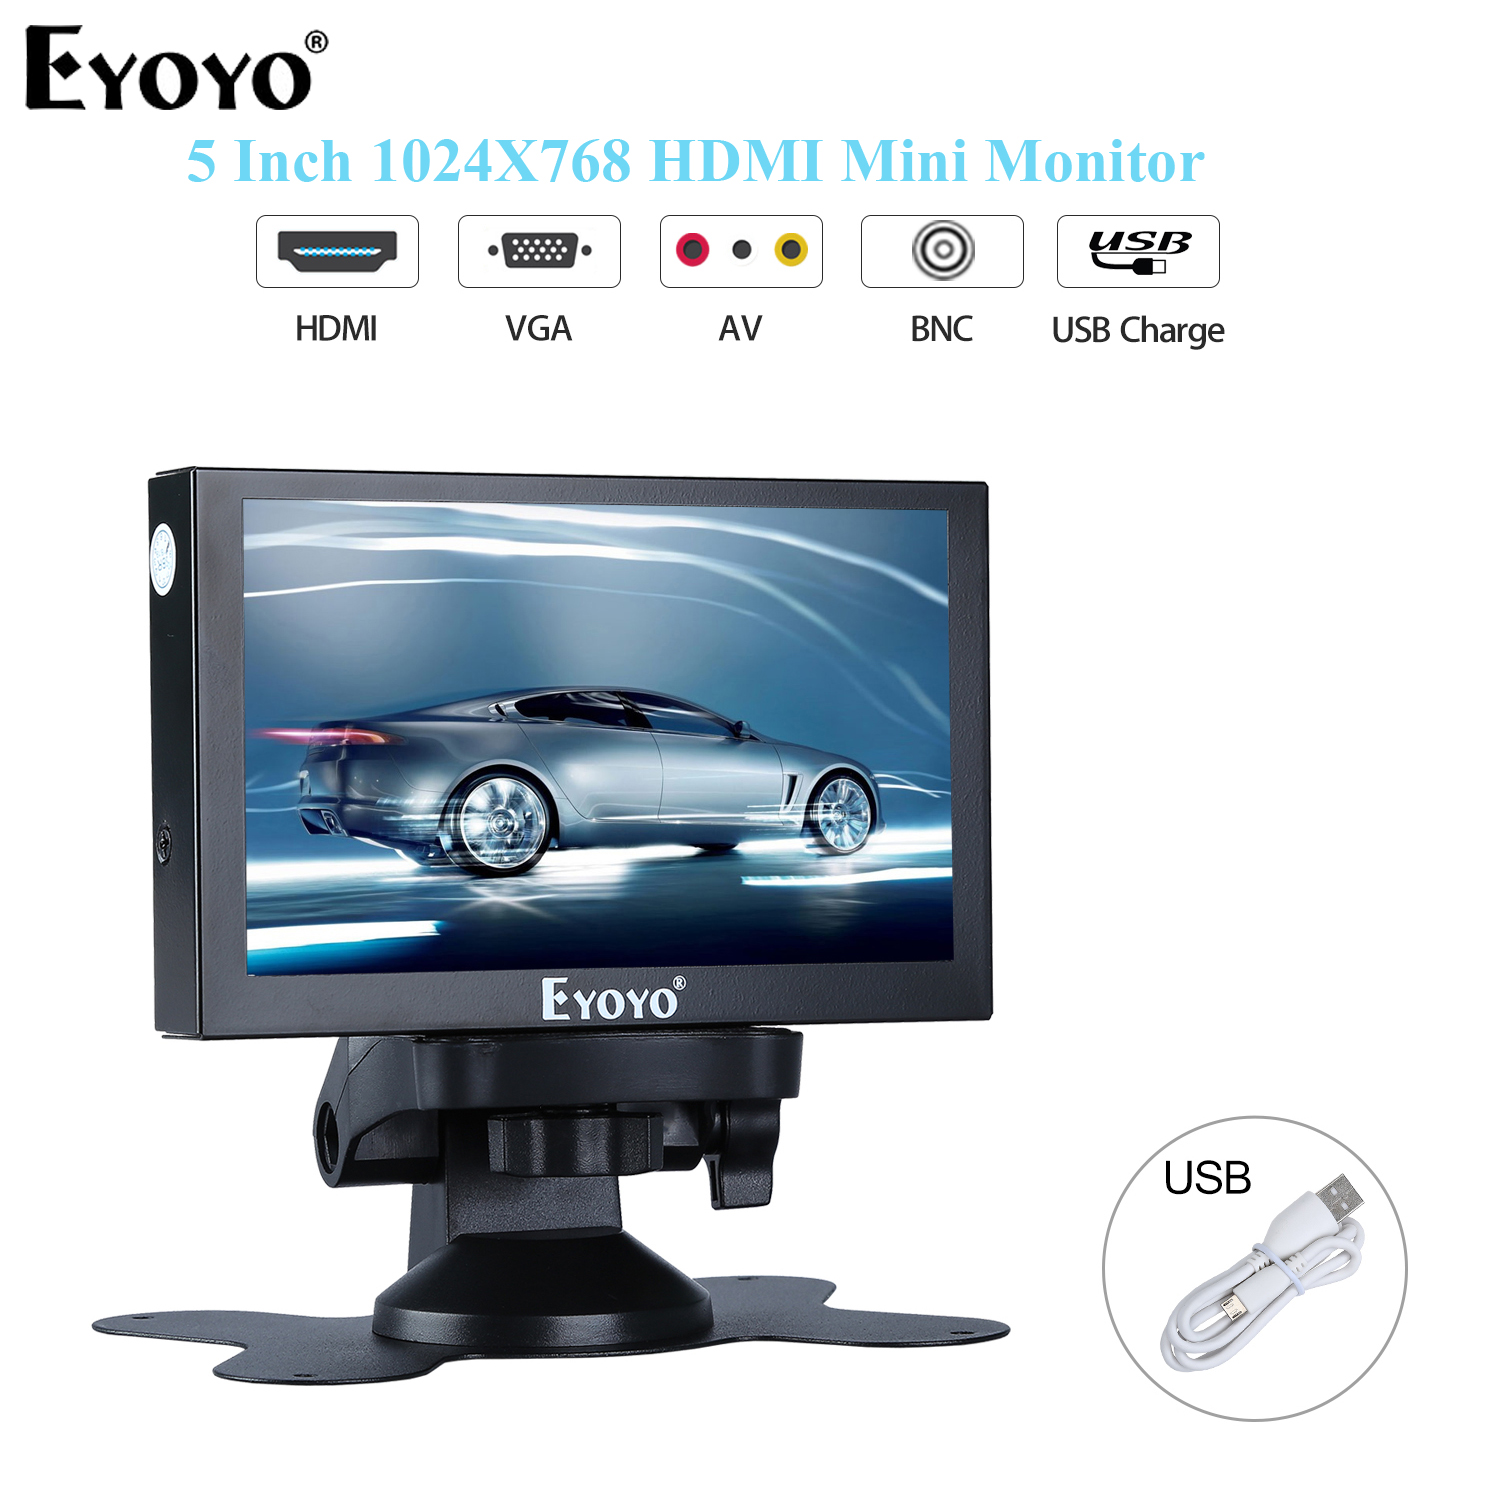 Eyoyo S501H IPS HDMI Mini Monitor 5.5